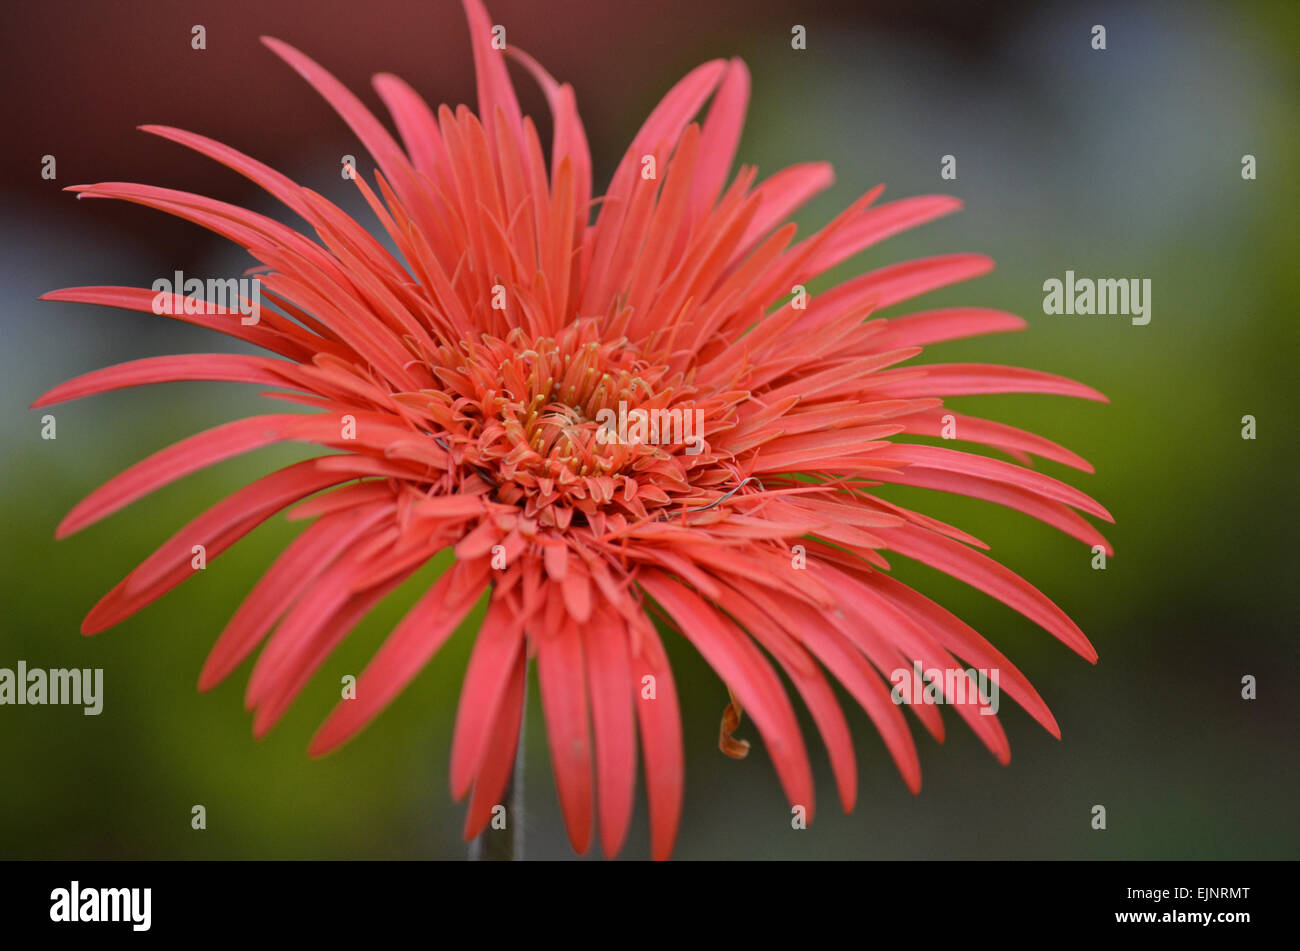 India red flower stock photos india red flower stock images alamy red gerbera flower at botanical garden in ootytamil naduindia stock image izmirmasajfo